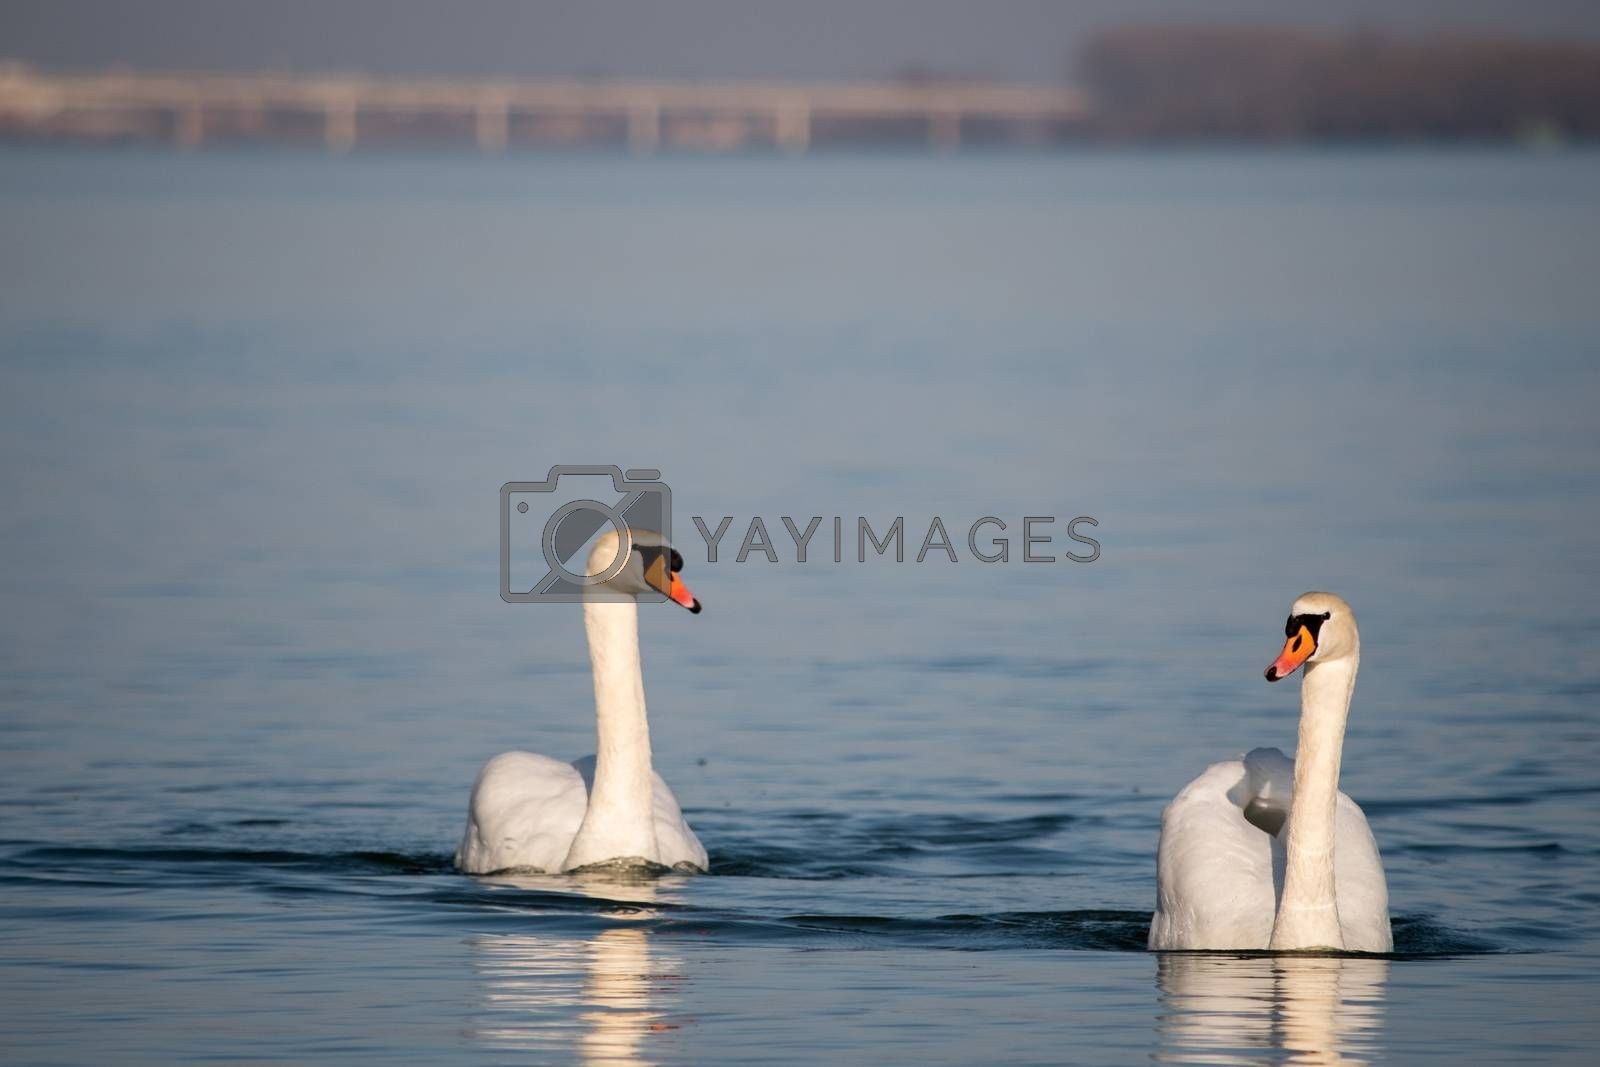 White swans swimming in the Danube river in Serbia by stargazer84